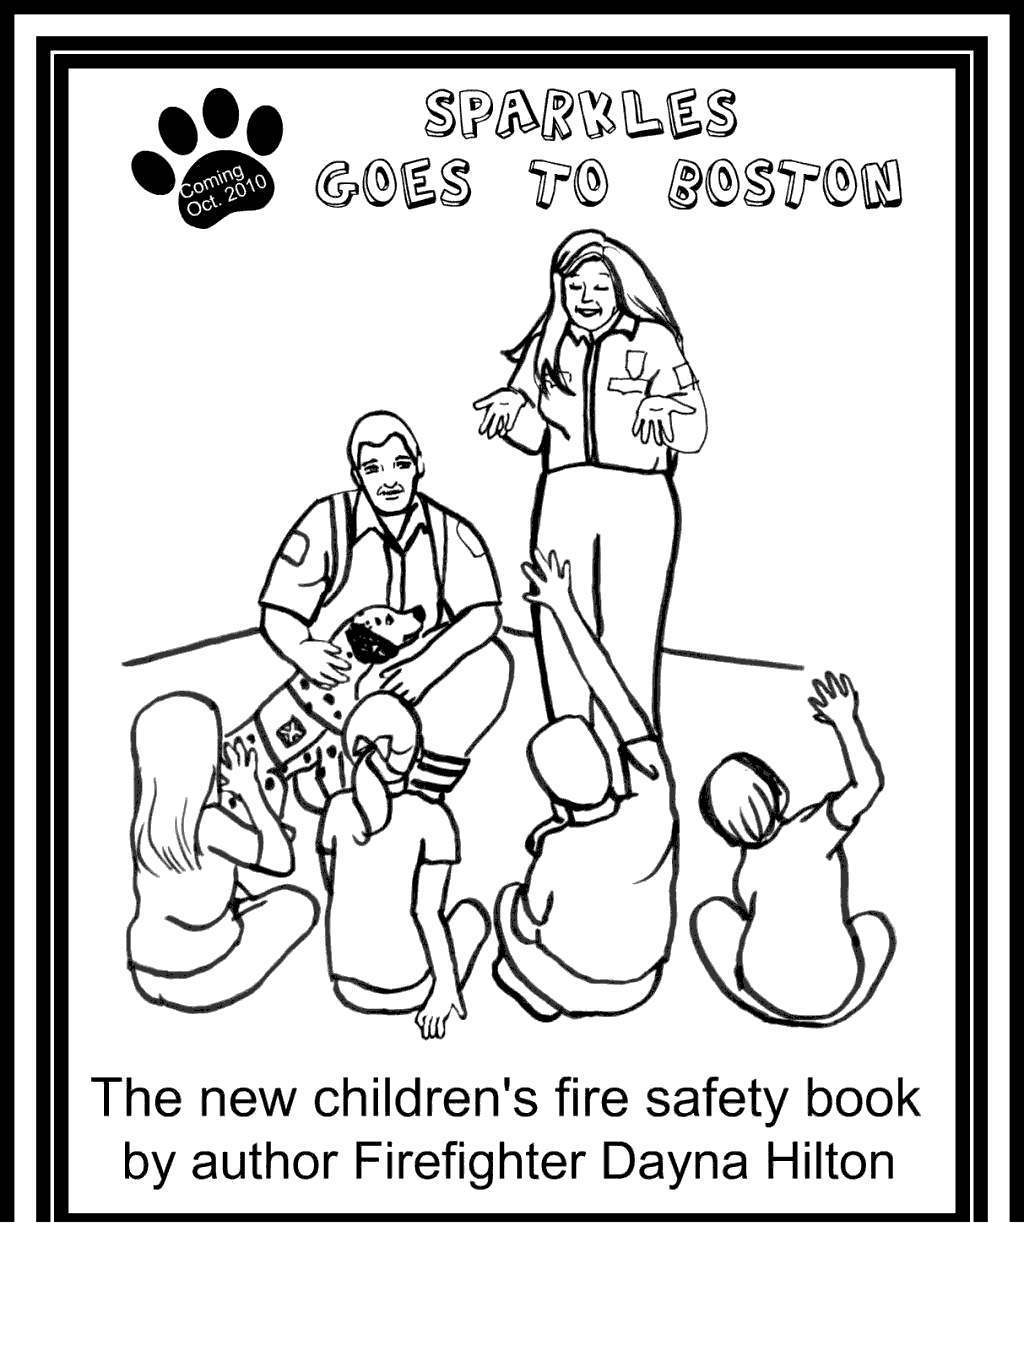 Free Sparky The Fire Dog Coloring Pages Better Safety printable